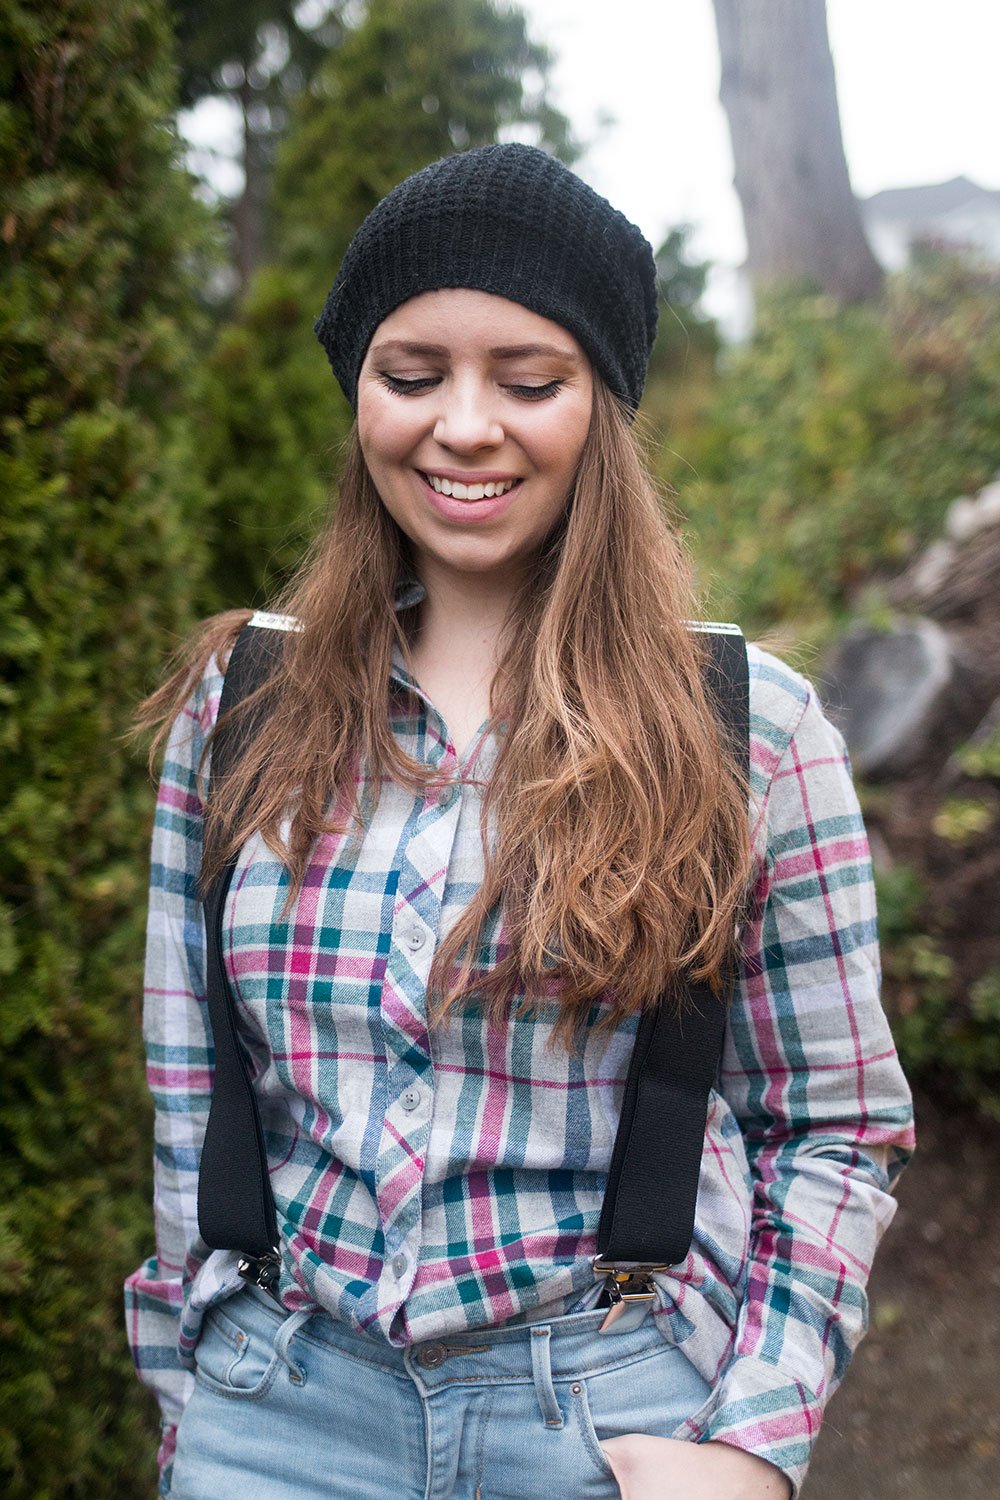 DIY Lumberjack Costumes for Women // Halloween Costumes to Wear to Work // Hello Rigby Seattle Fashion Blog